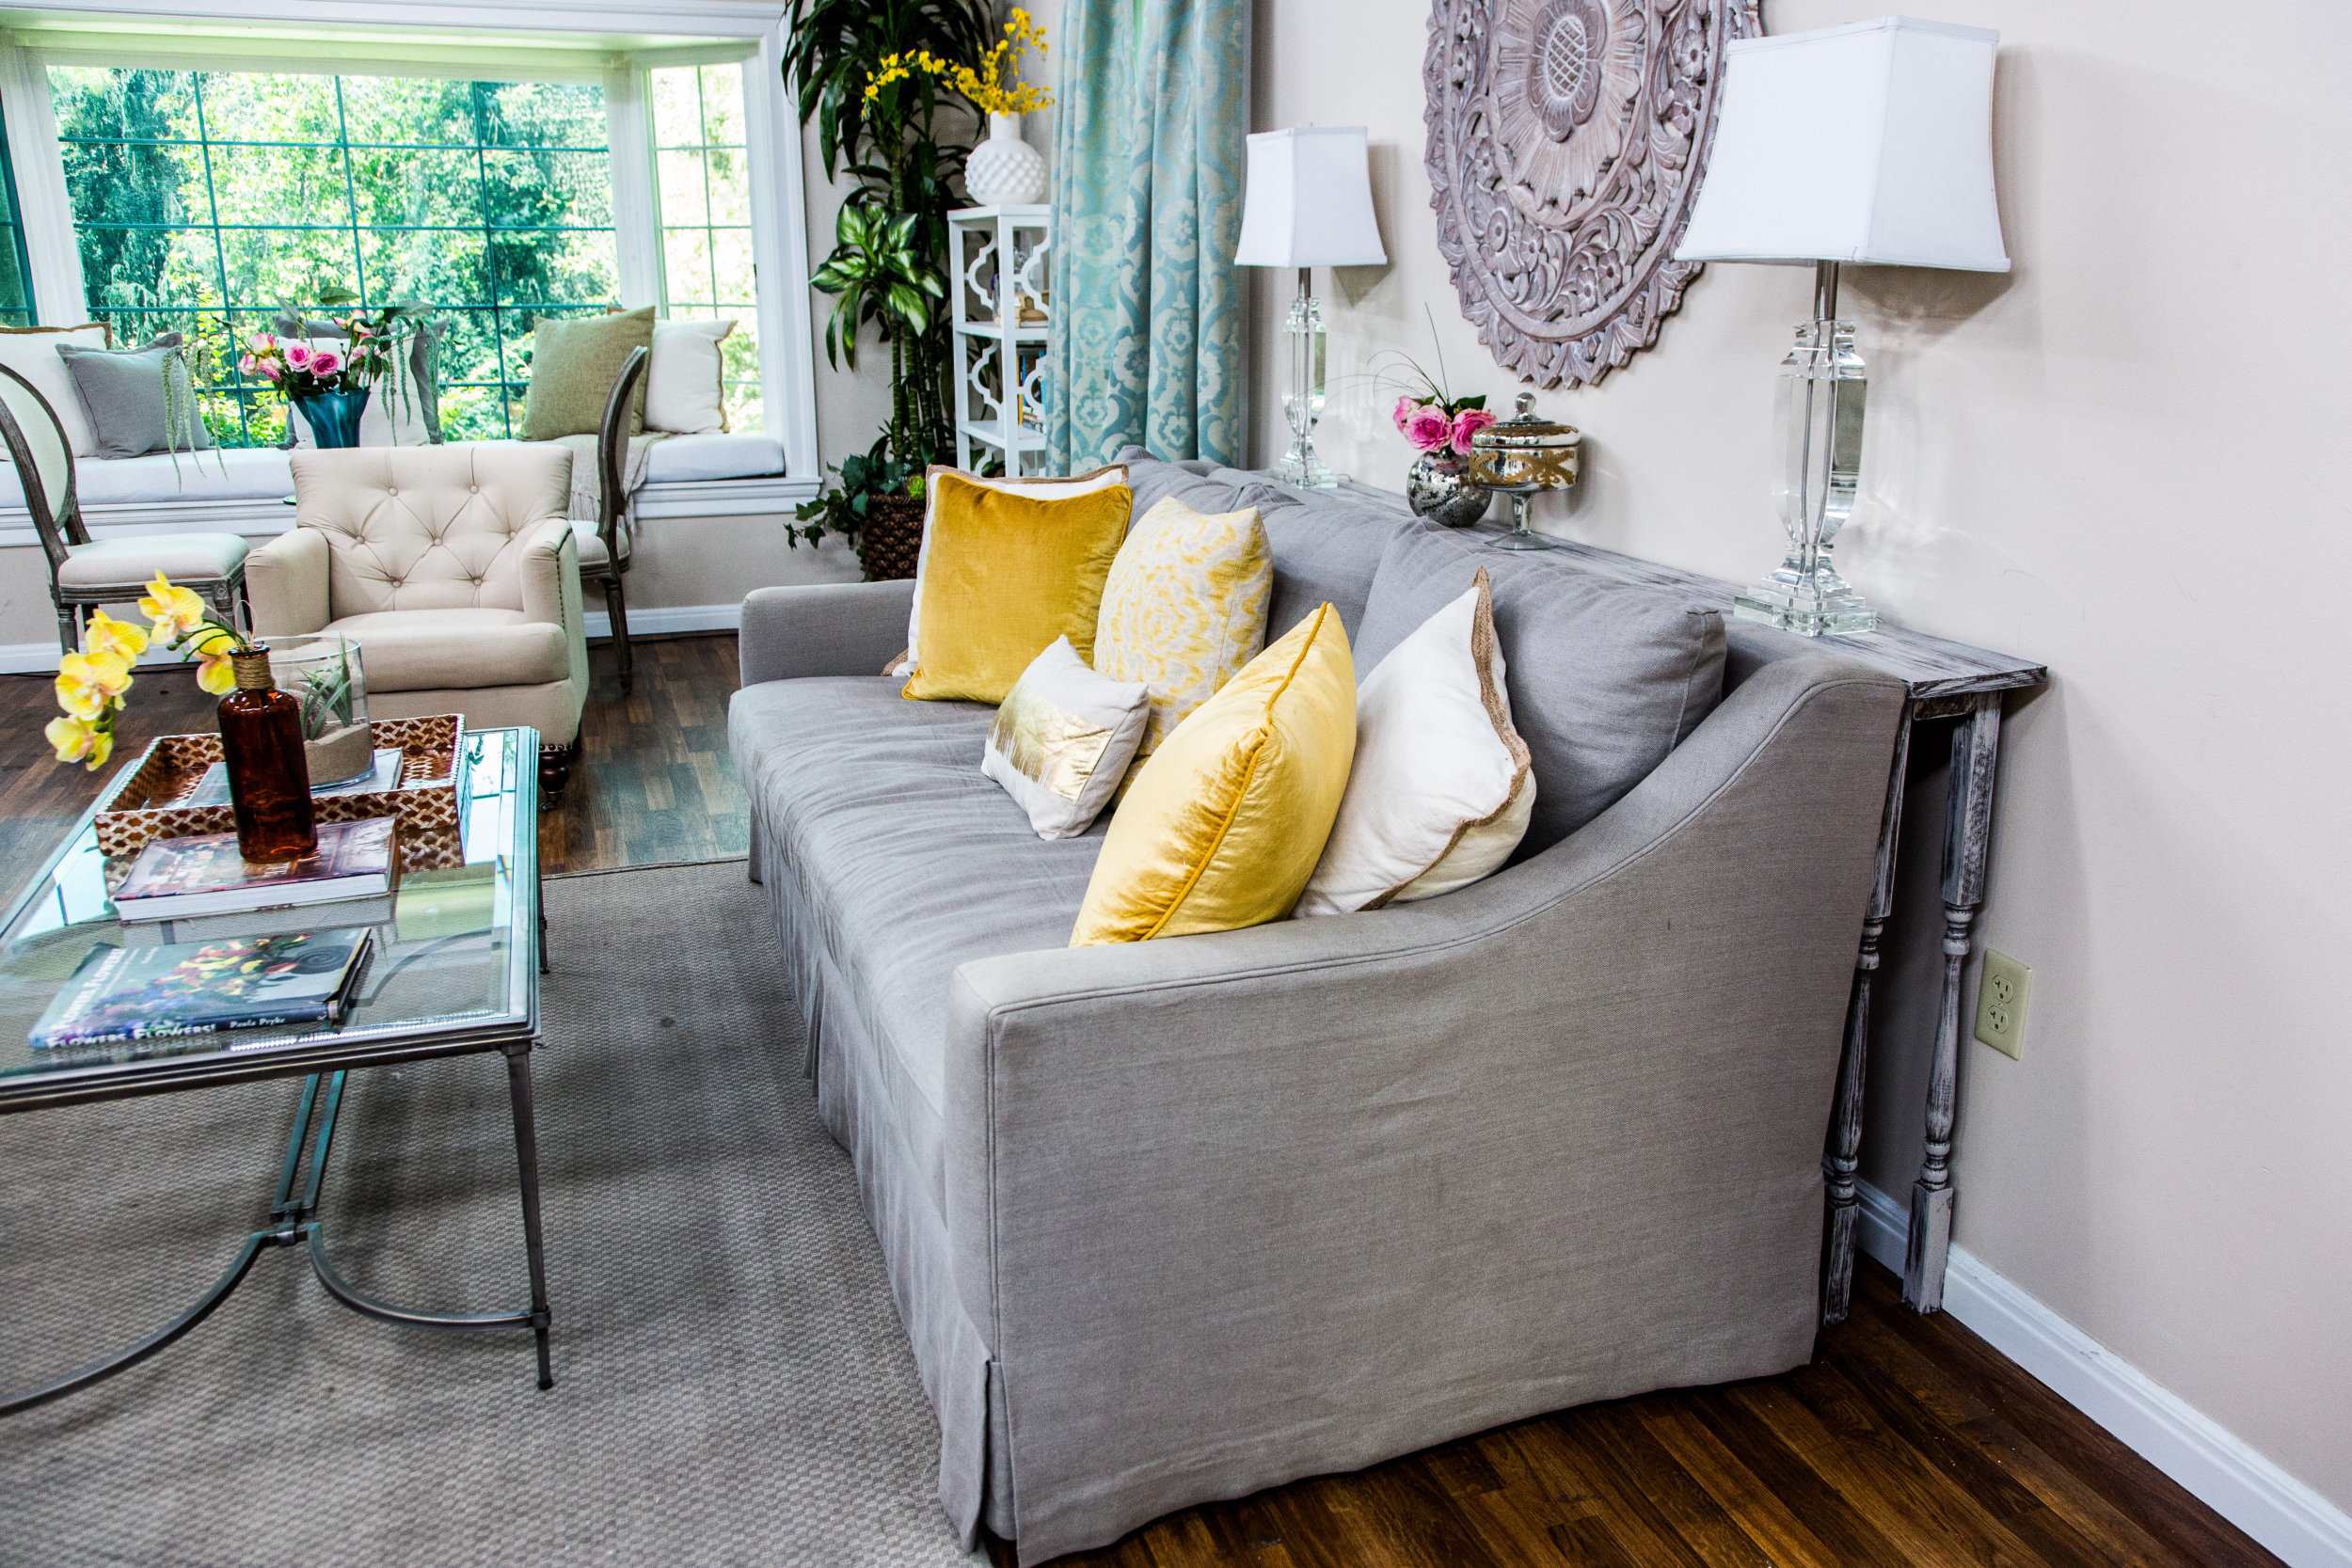 How-To - Paige's DIY Back-of-Couch Table - Home & Family | Hallmark Channel